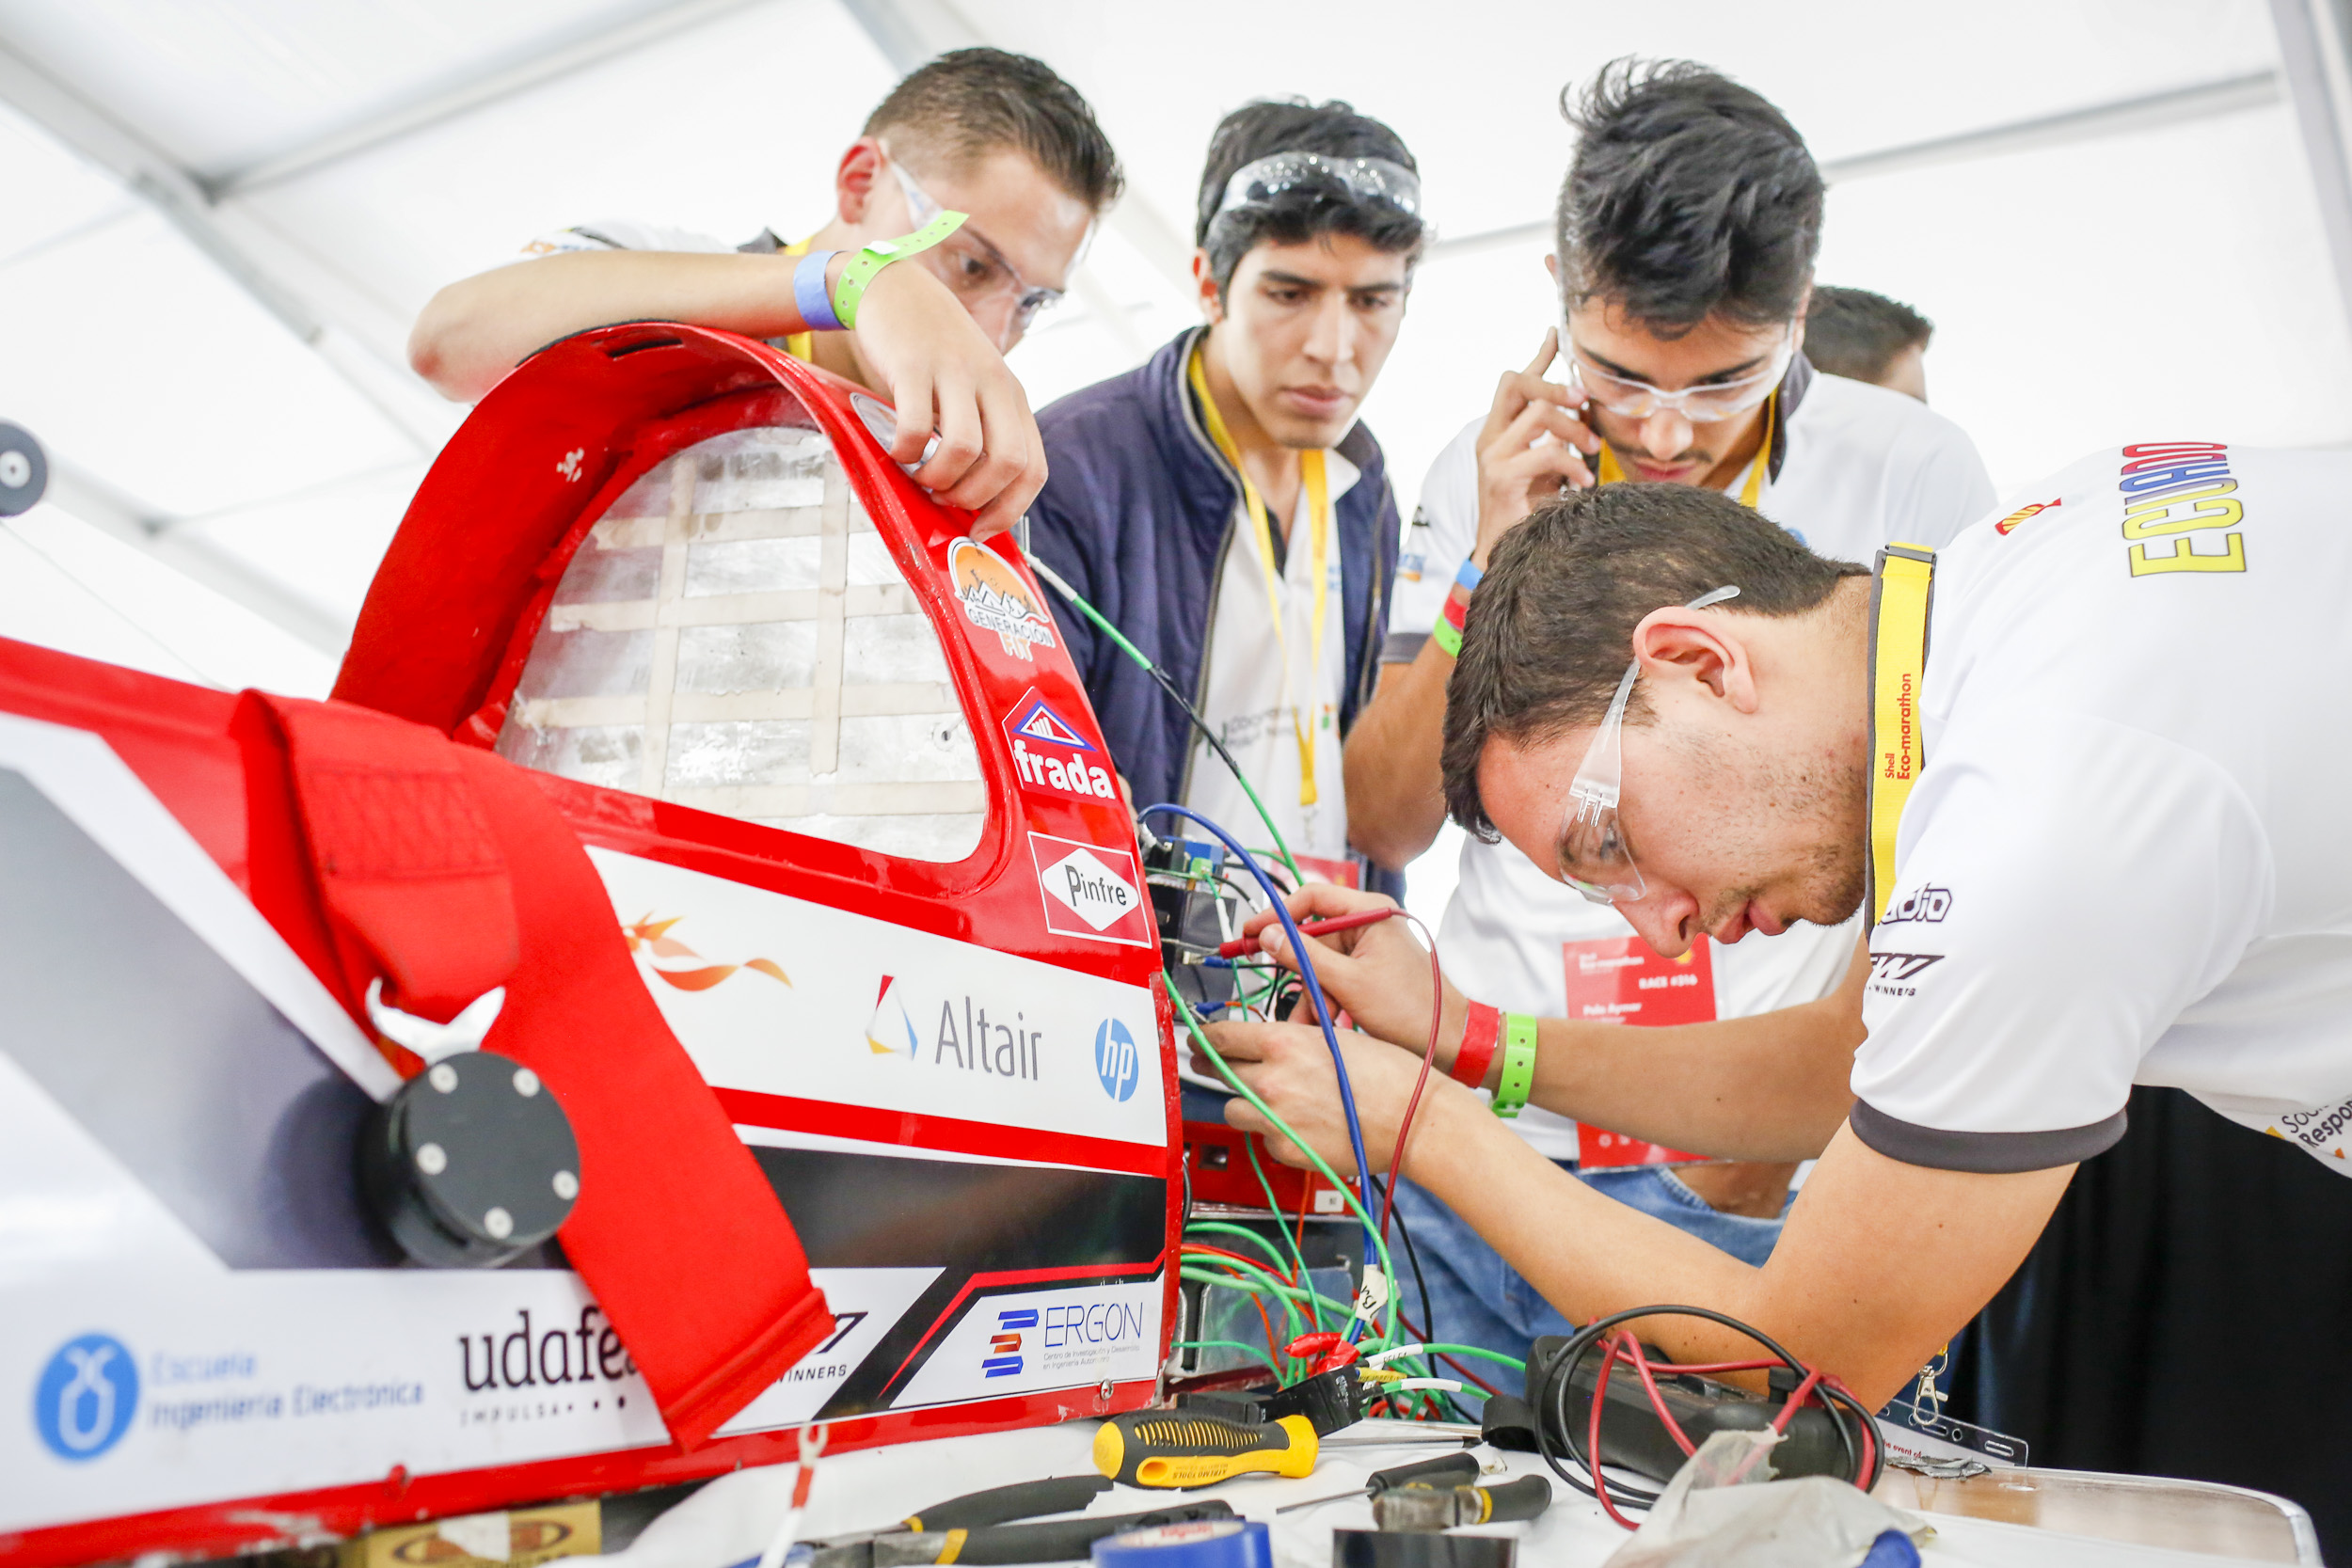 Team  #316,  E-Team UDA Elec, of Universidad del Azuay, in Cuenca, Azuay, Ecuador, Prototype, Battery Electric work on their car in the paddock during day one of Shell Make the Future at Sonoma Raceway, Thursday, April 19, 2018 in Sonoma, Calif.